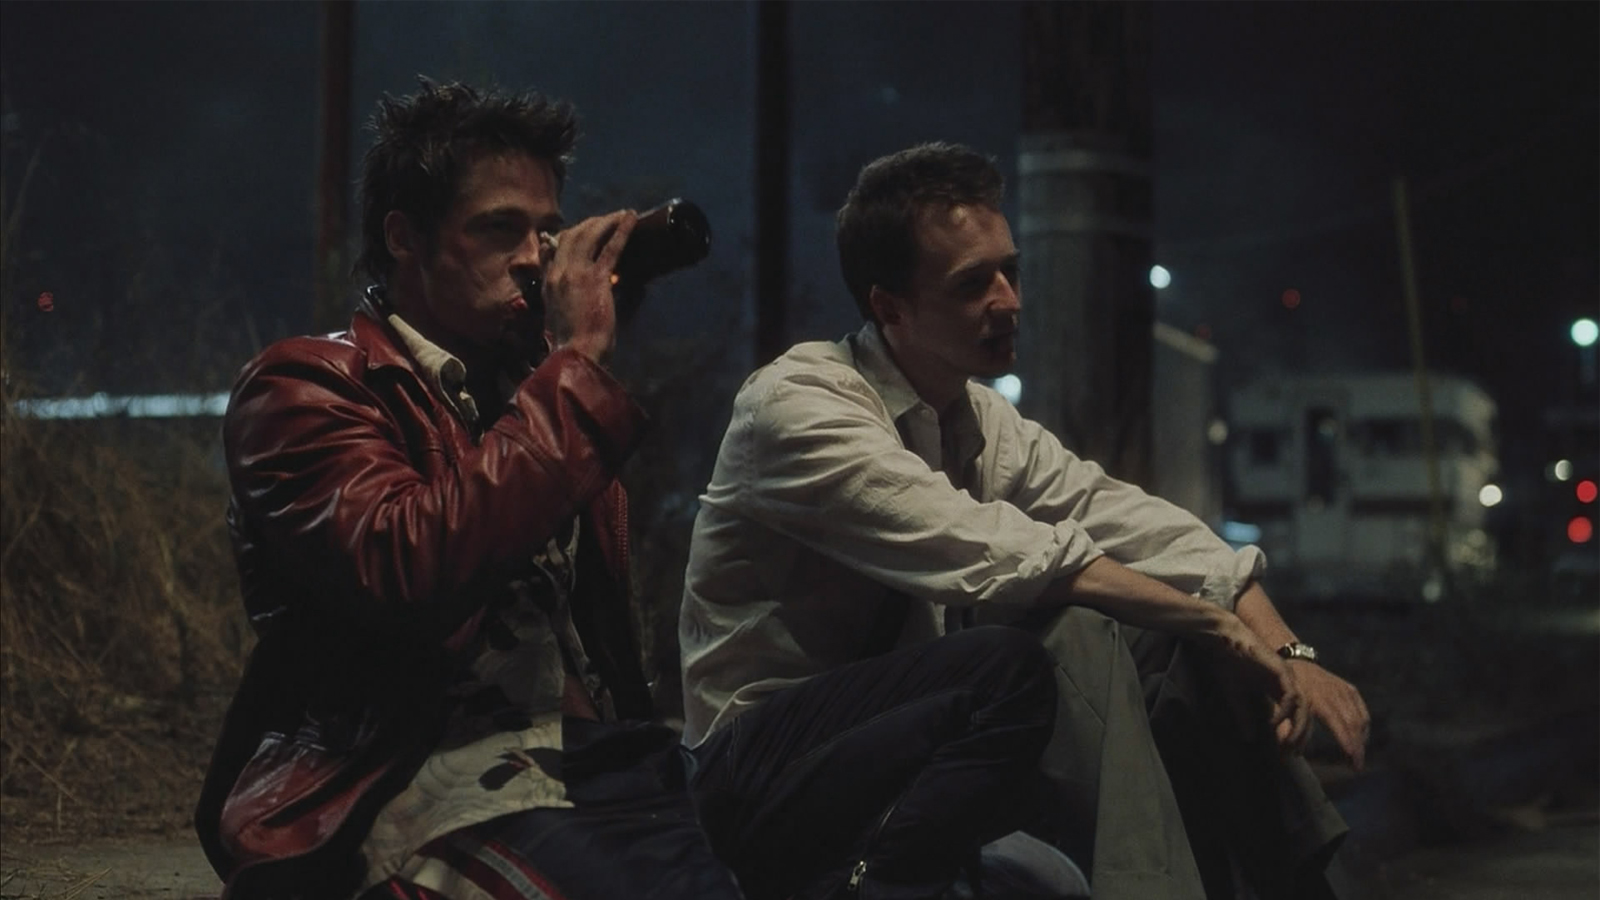 Movie - Fight Club  - Movie - Fight - Club - Brad Pitt - Edward Norton - Fight Cub Wallpaper